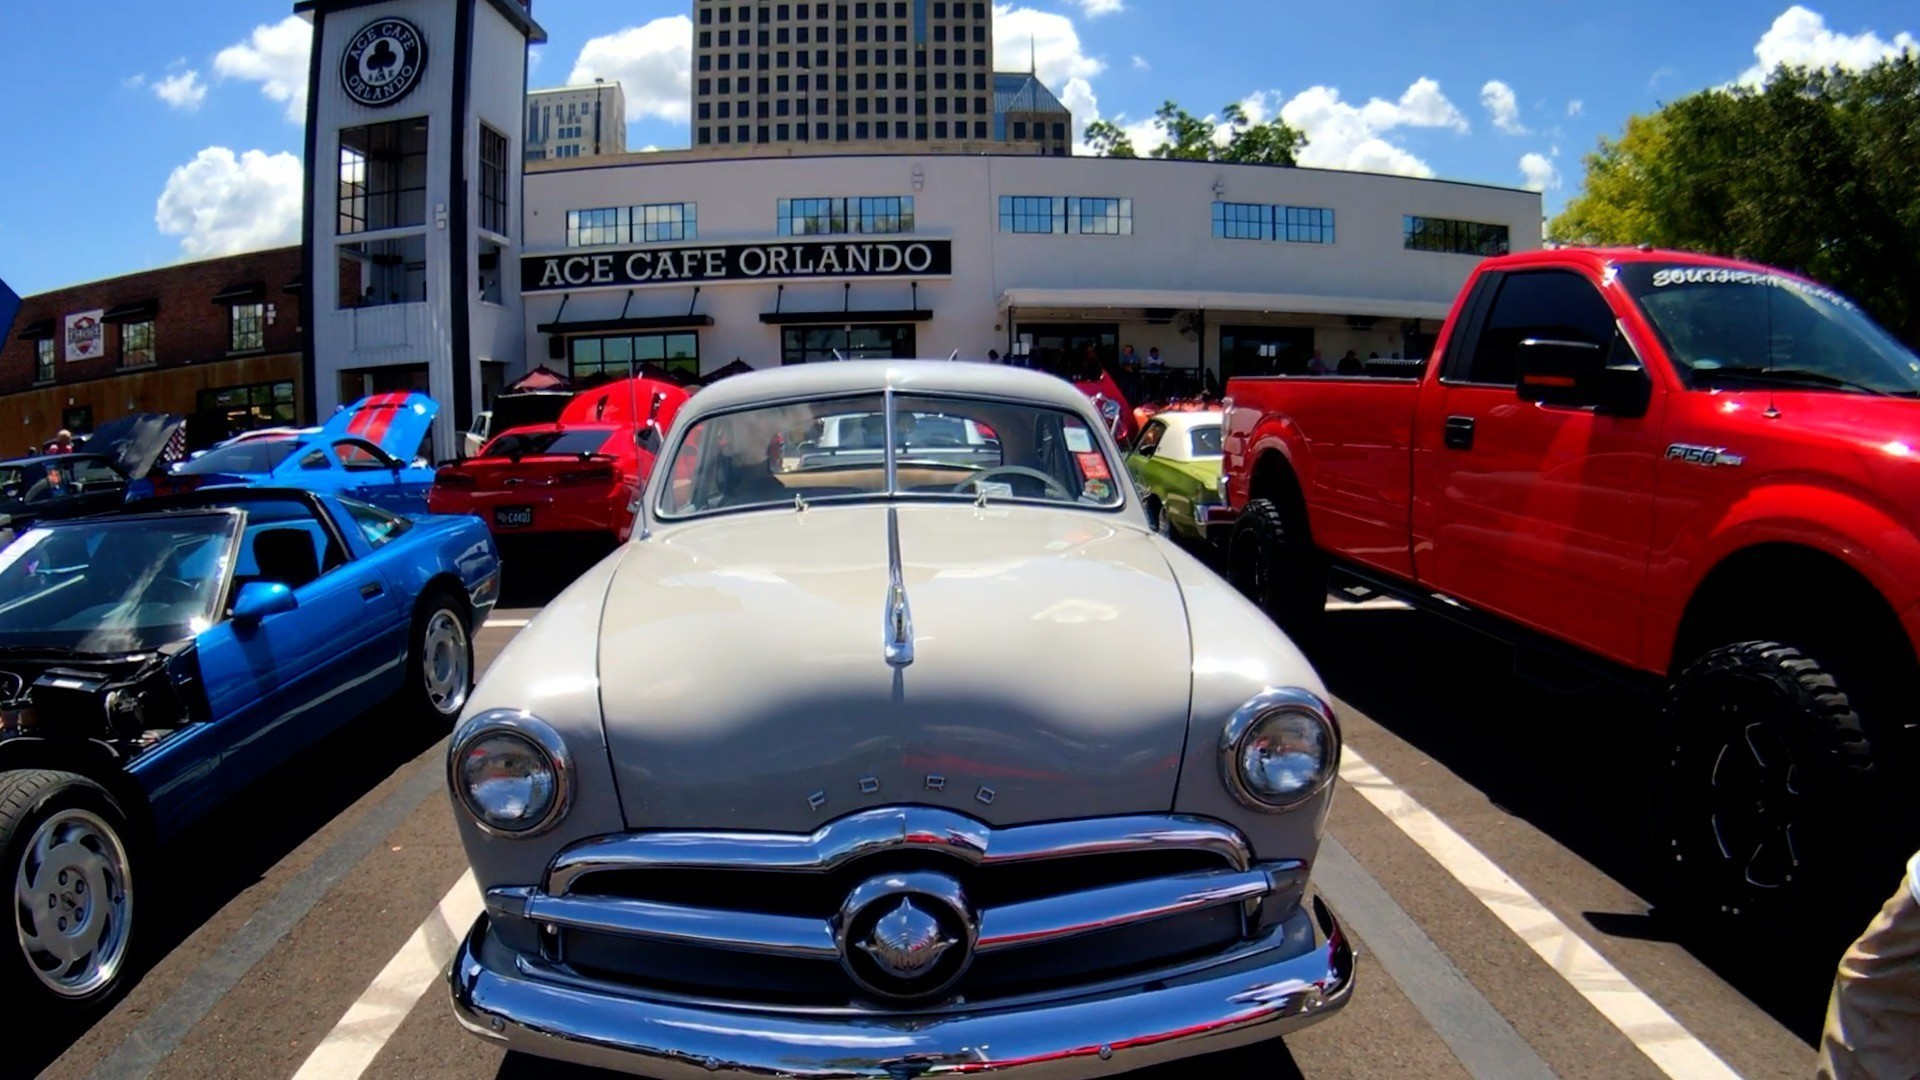 Enthusiasts Celebrate July Th At Downtown Orlando Car Show - Car show orlando classic weekend